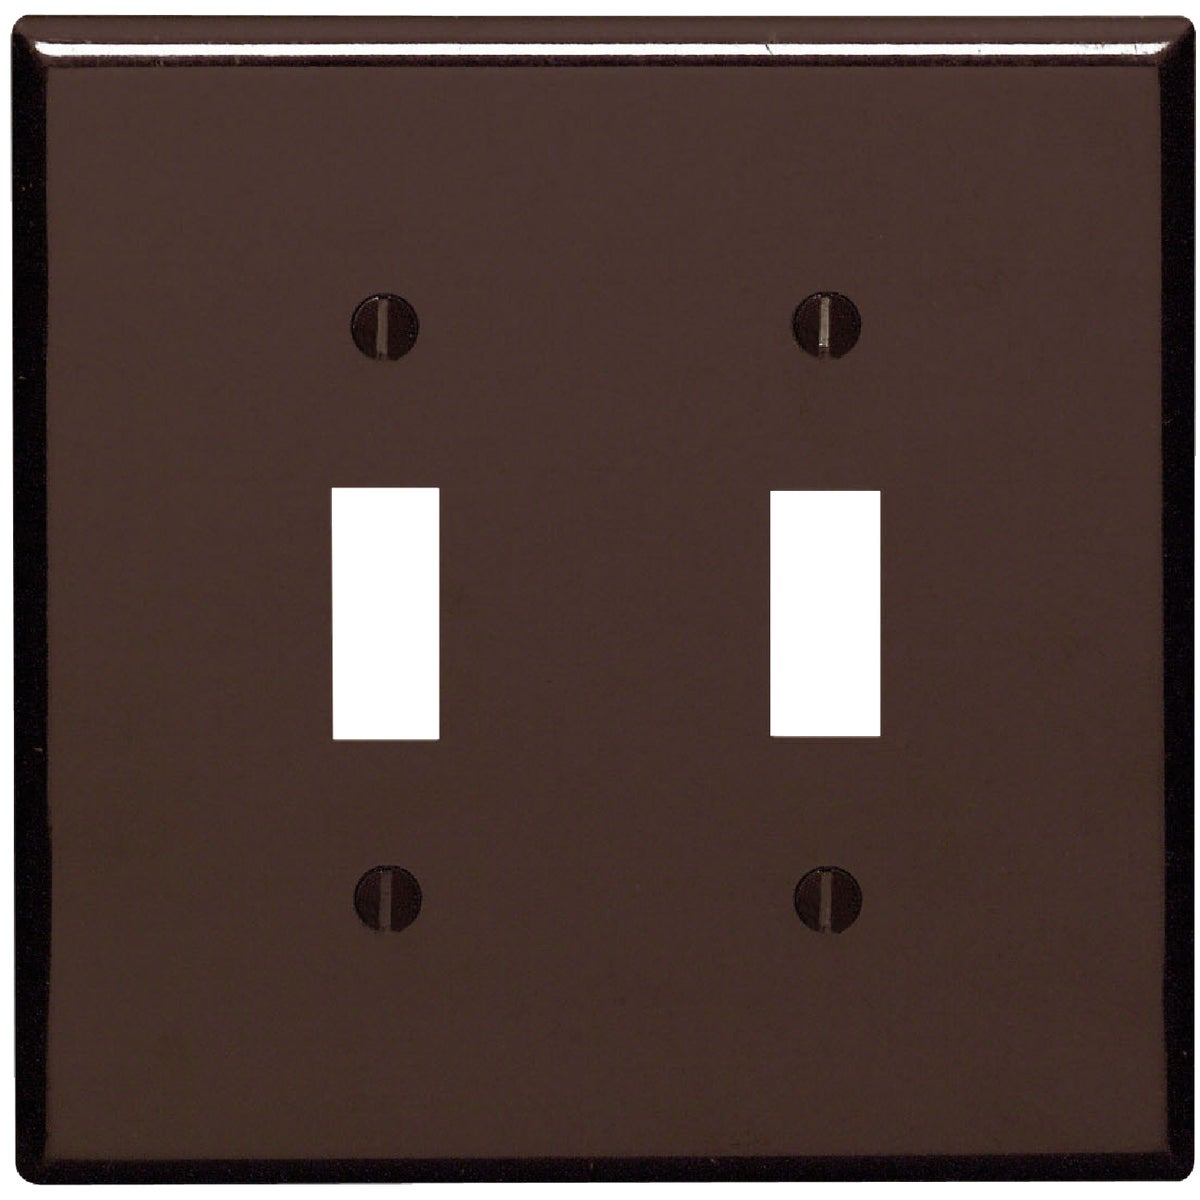 BRN 2-TOGGLE WALL PLATE - 85109 by Leviton Mfg Co